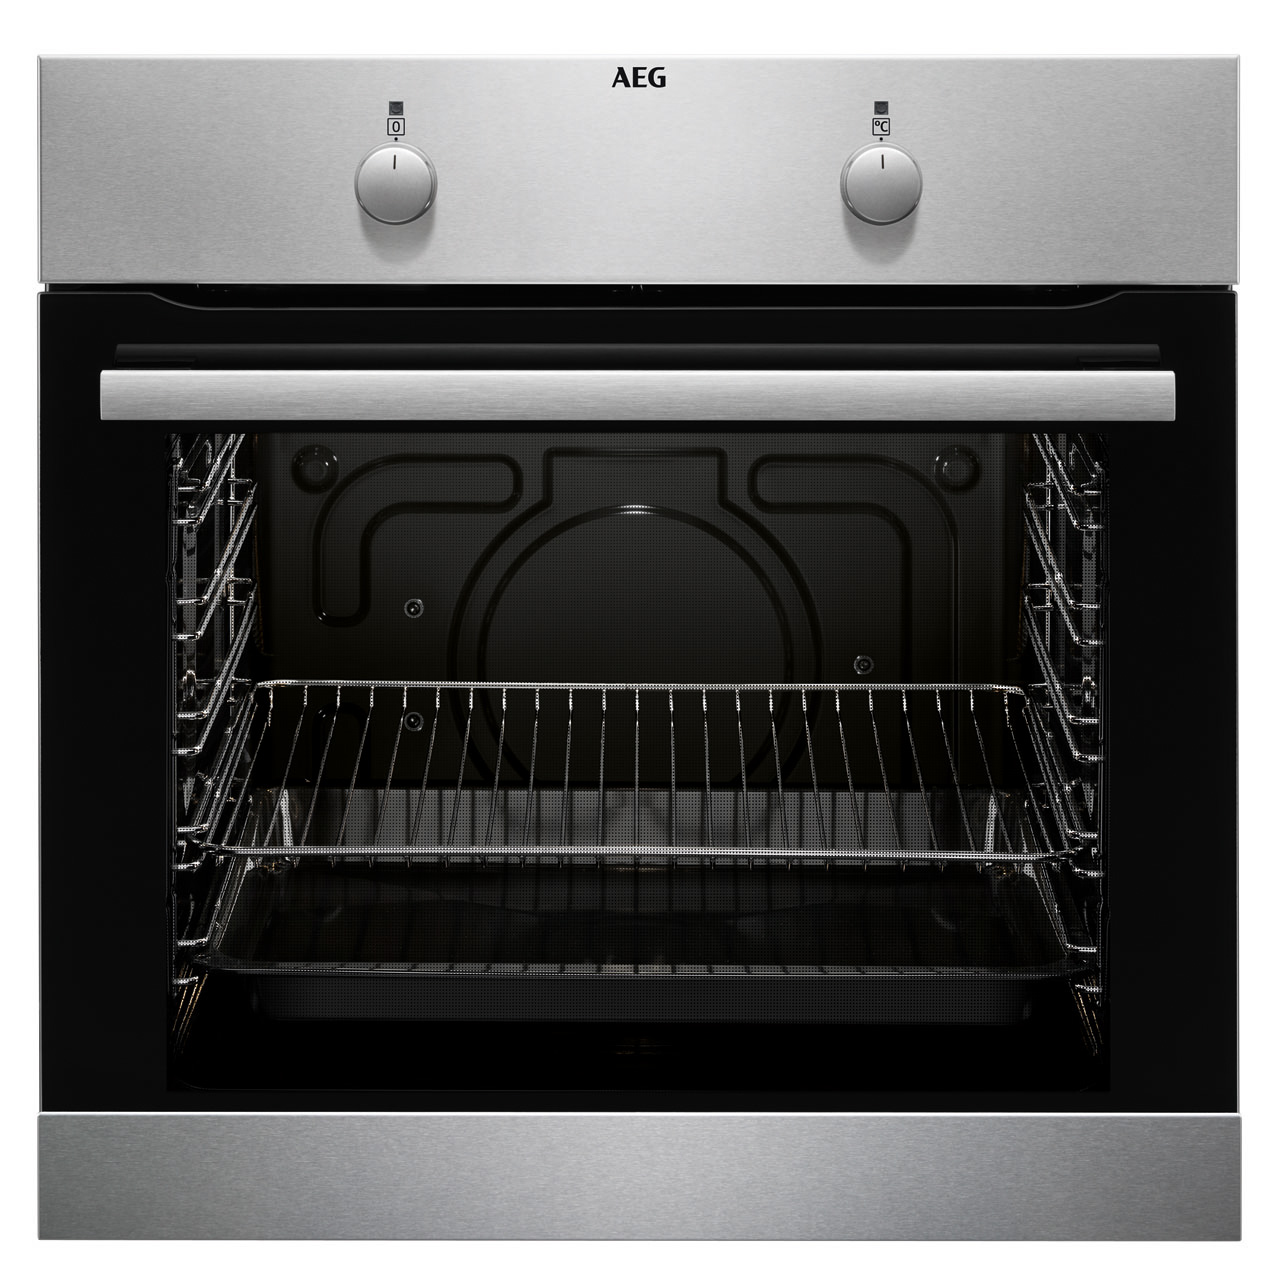 aeg einbauherd backofen beb100010m competence stainless steel with antifinge ebay. Black Bedroom Furniture Sets. Home Design Ideas